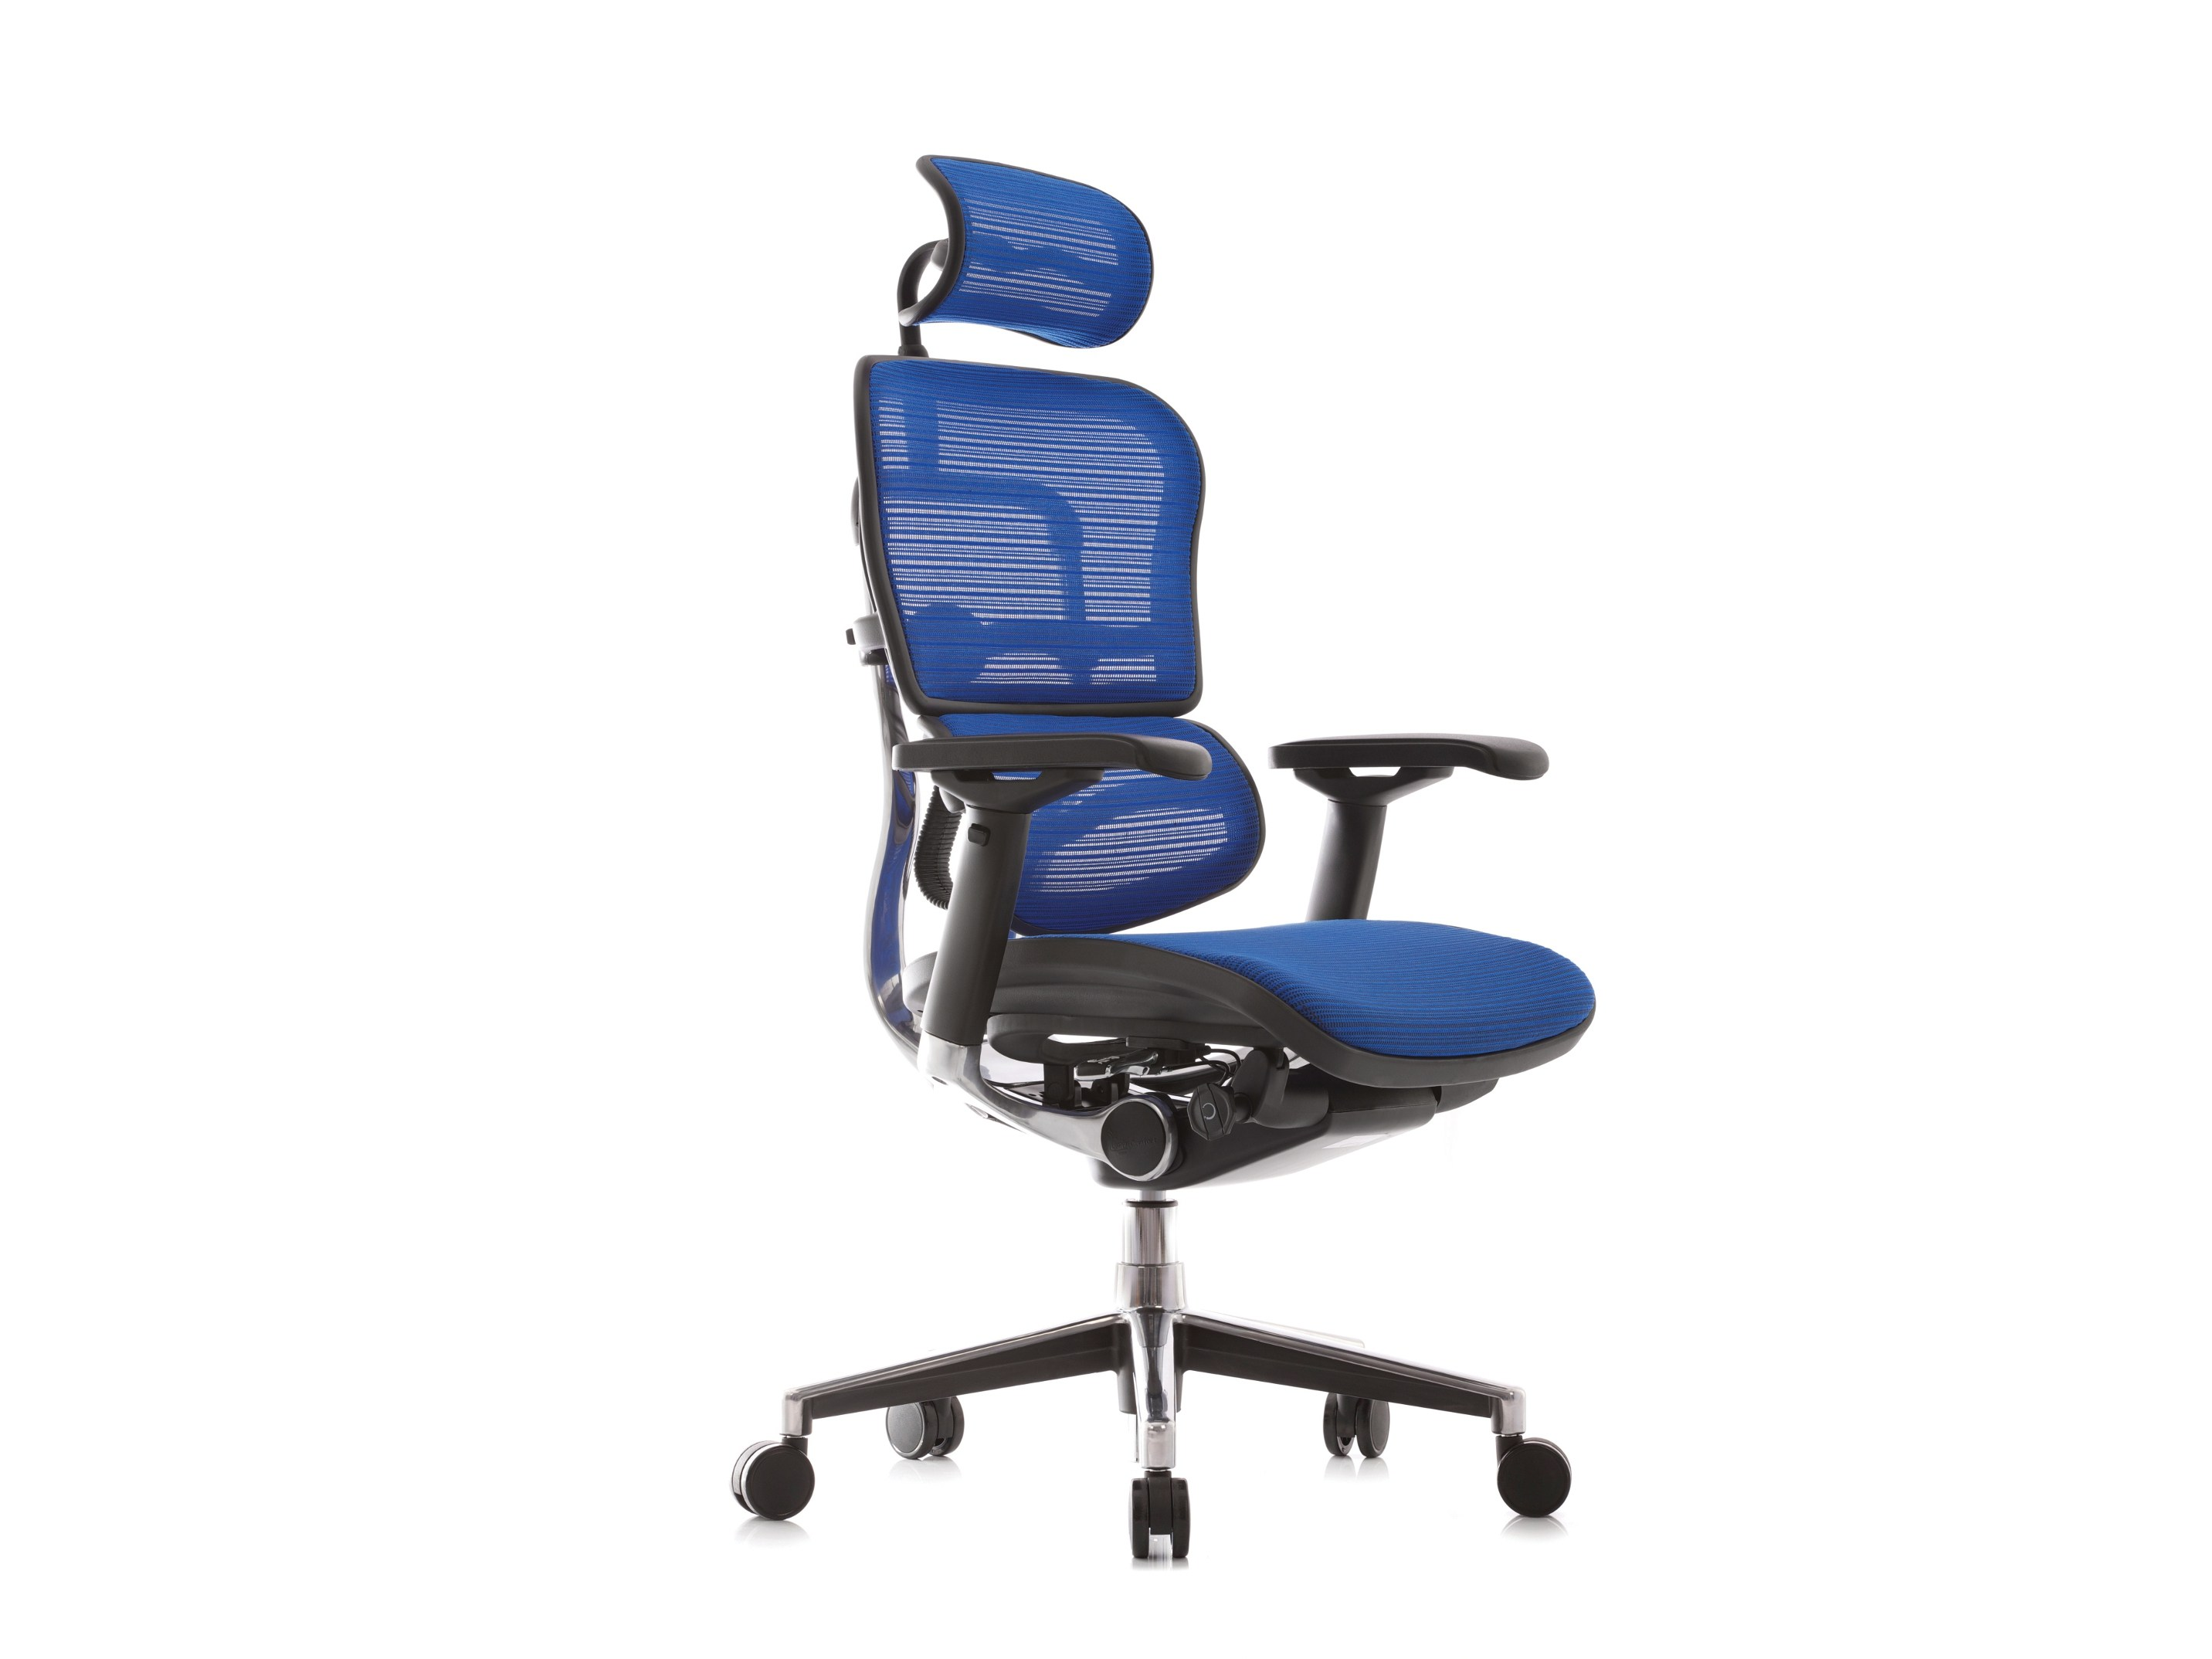 Swivel task chair with 5 Spoke base with armrests GENIDIA By